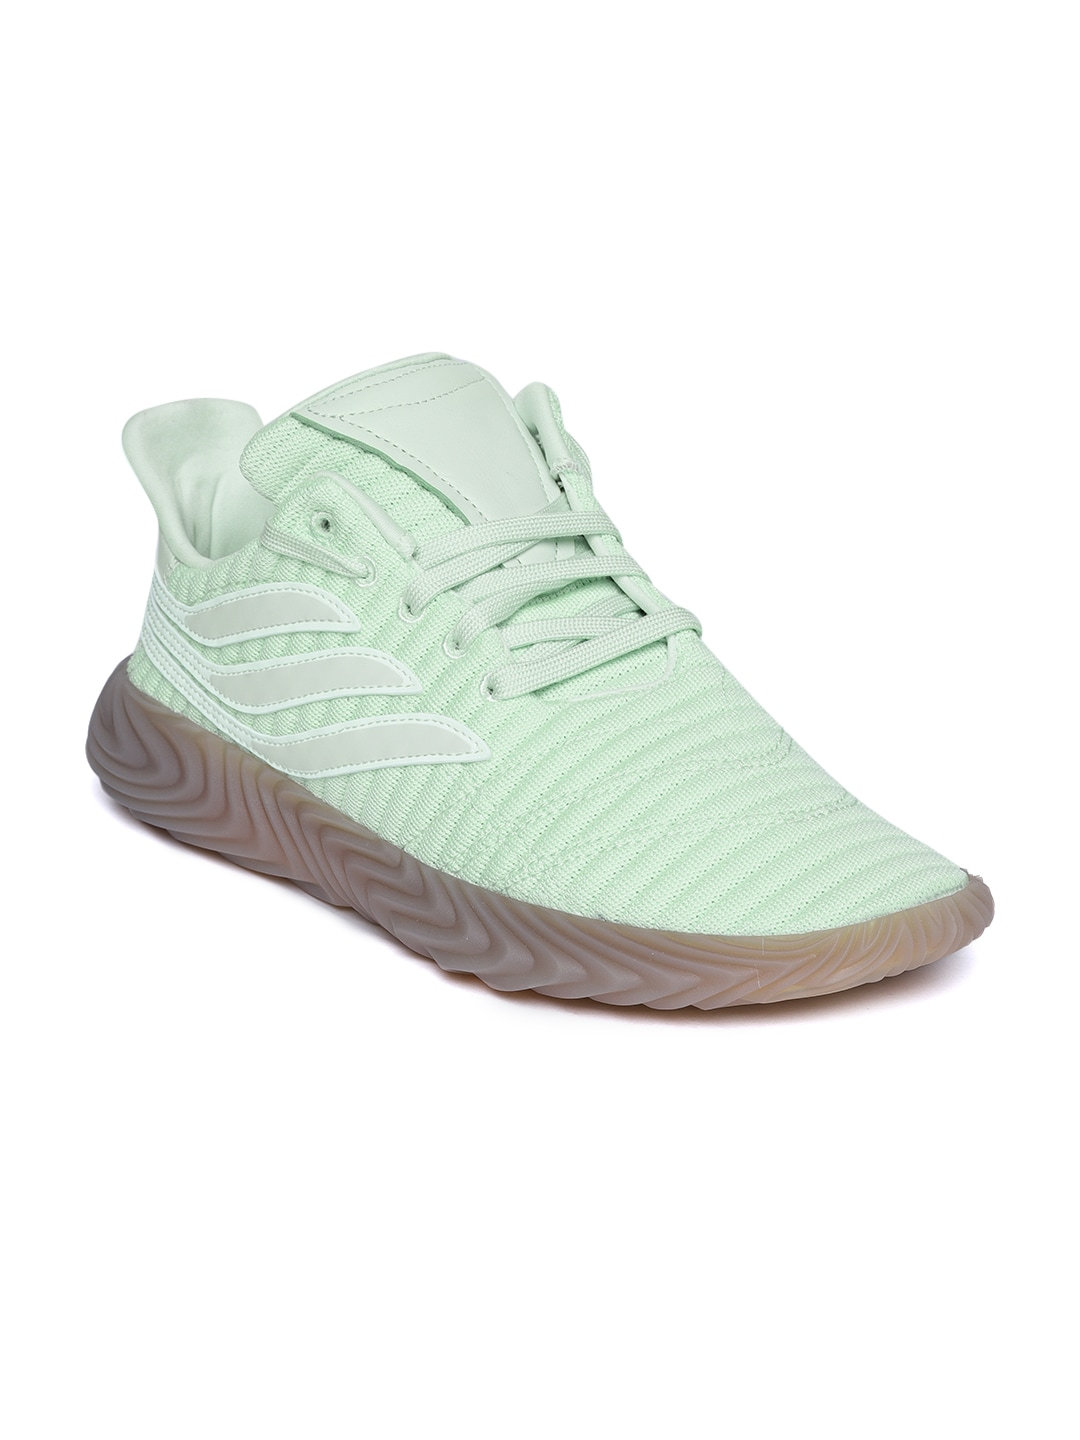 low priced 14925 cef49 ... germany adidas shoes buy adidas shoes for men women online myntra e18a3  8220a